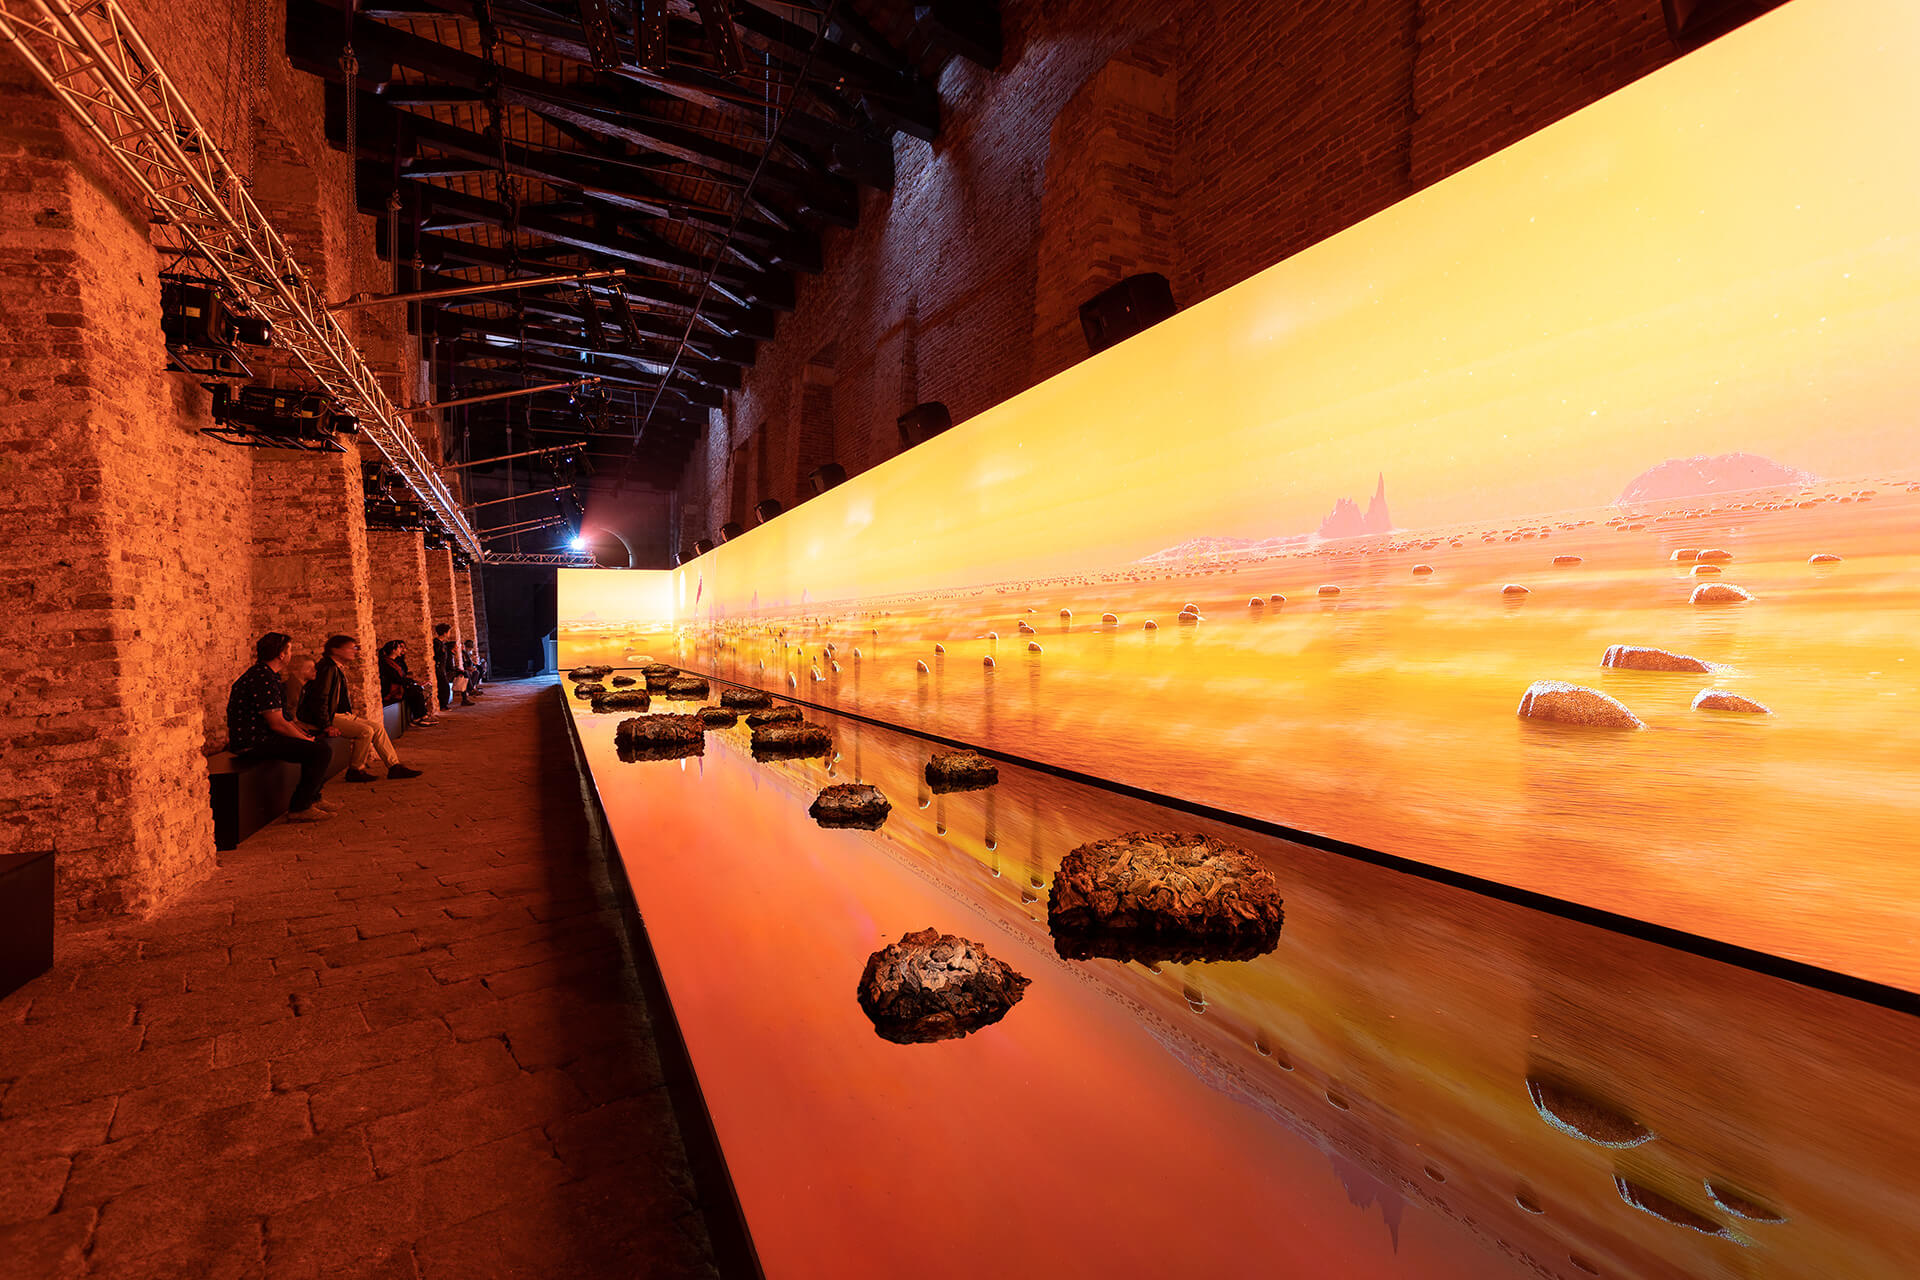 View of the 'Living Rocks' installation at the Venice Art Biennale 2019 | Venice reopens post COVID-19 lockdown | STIRworld